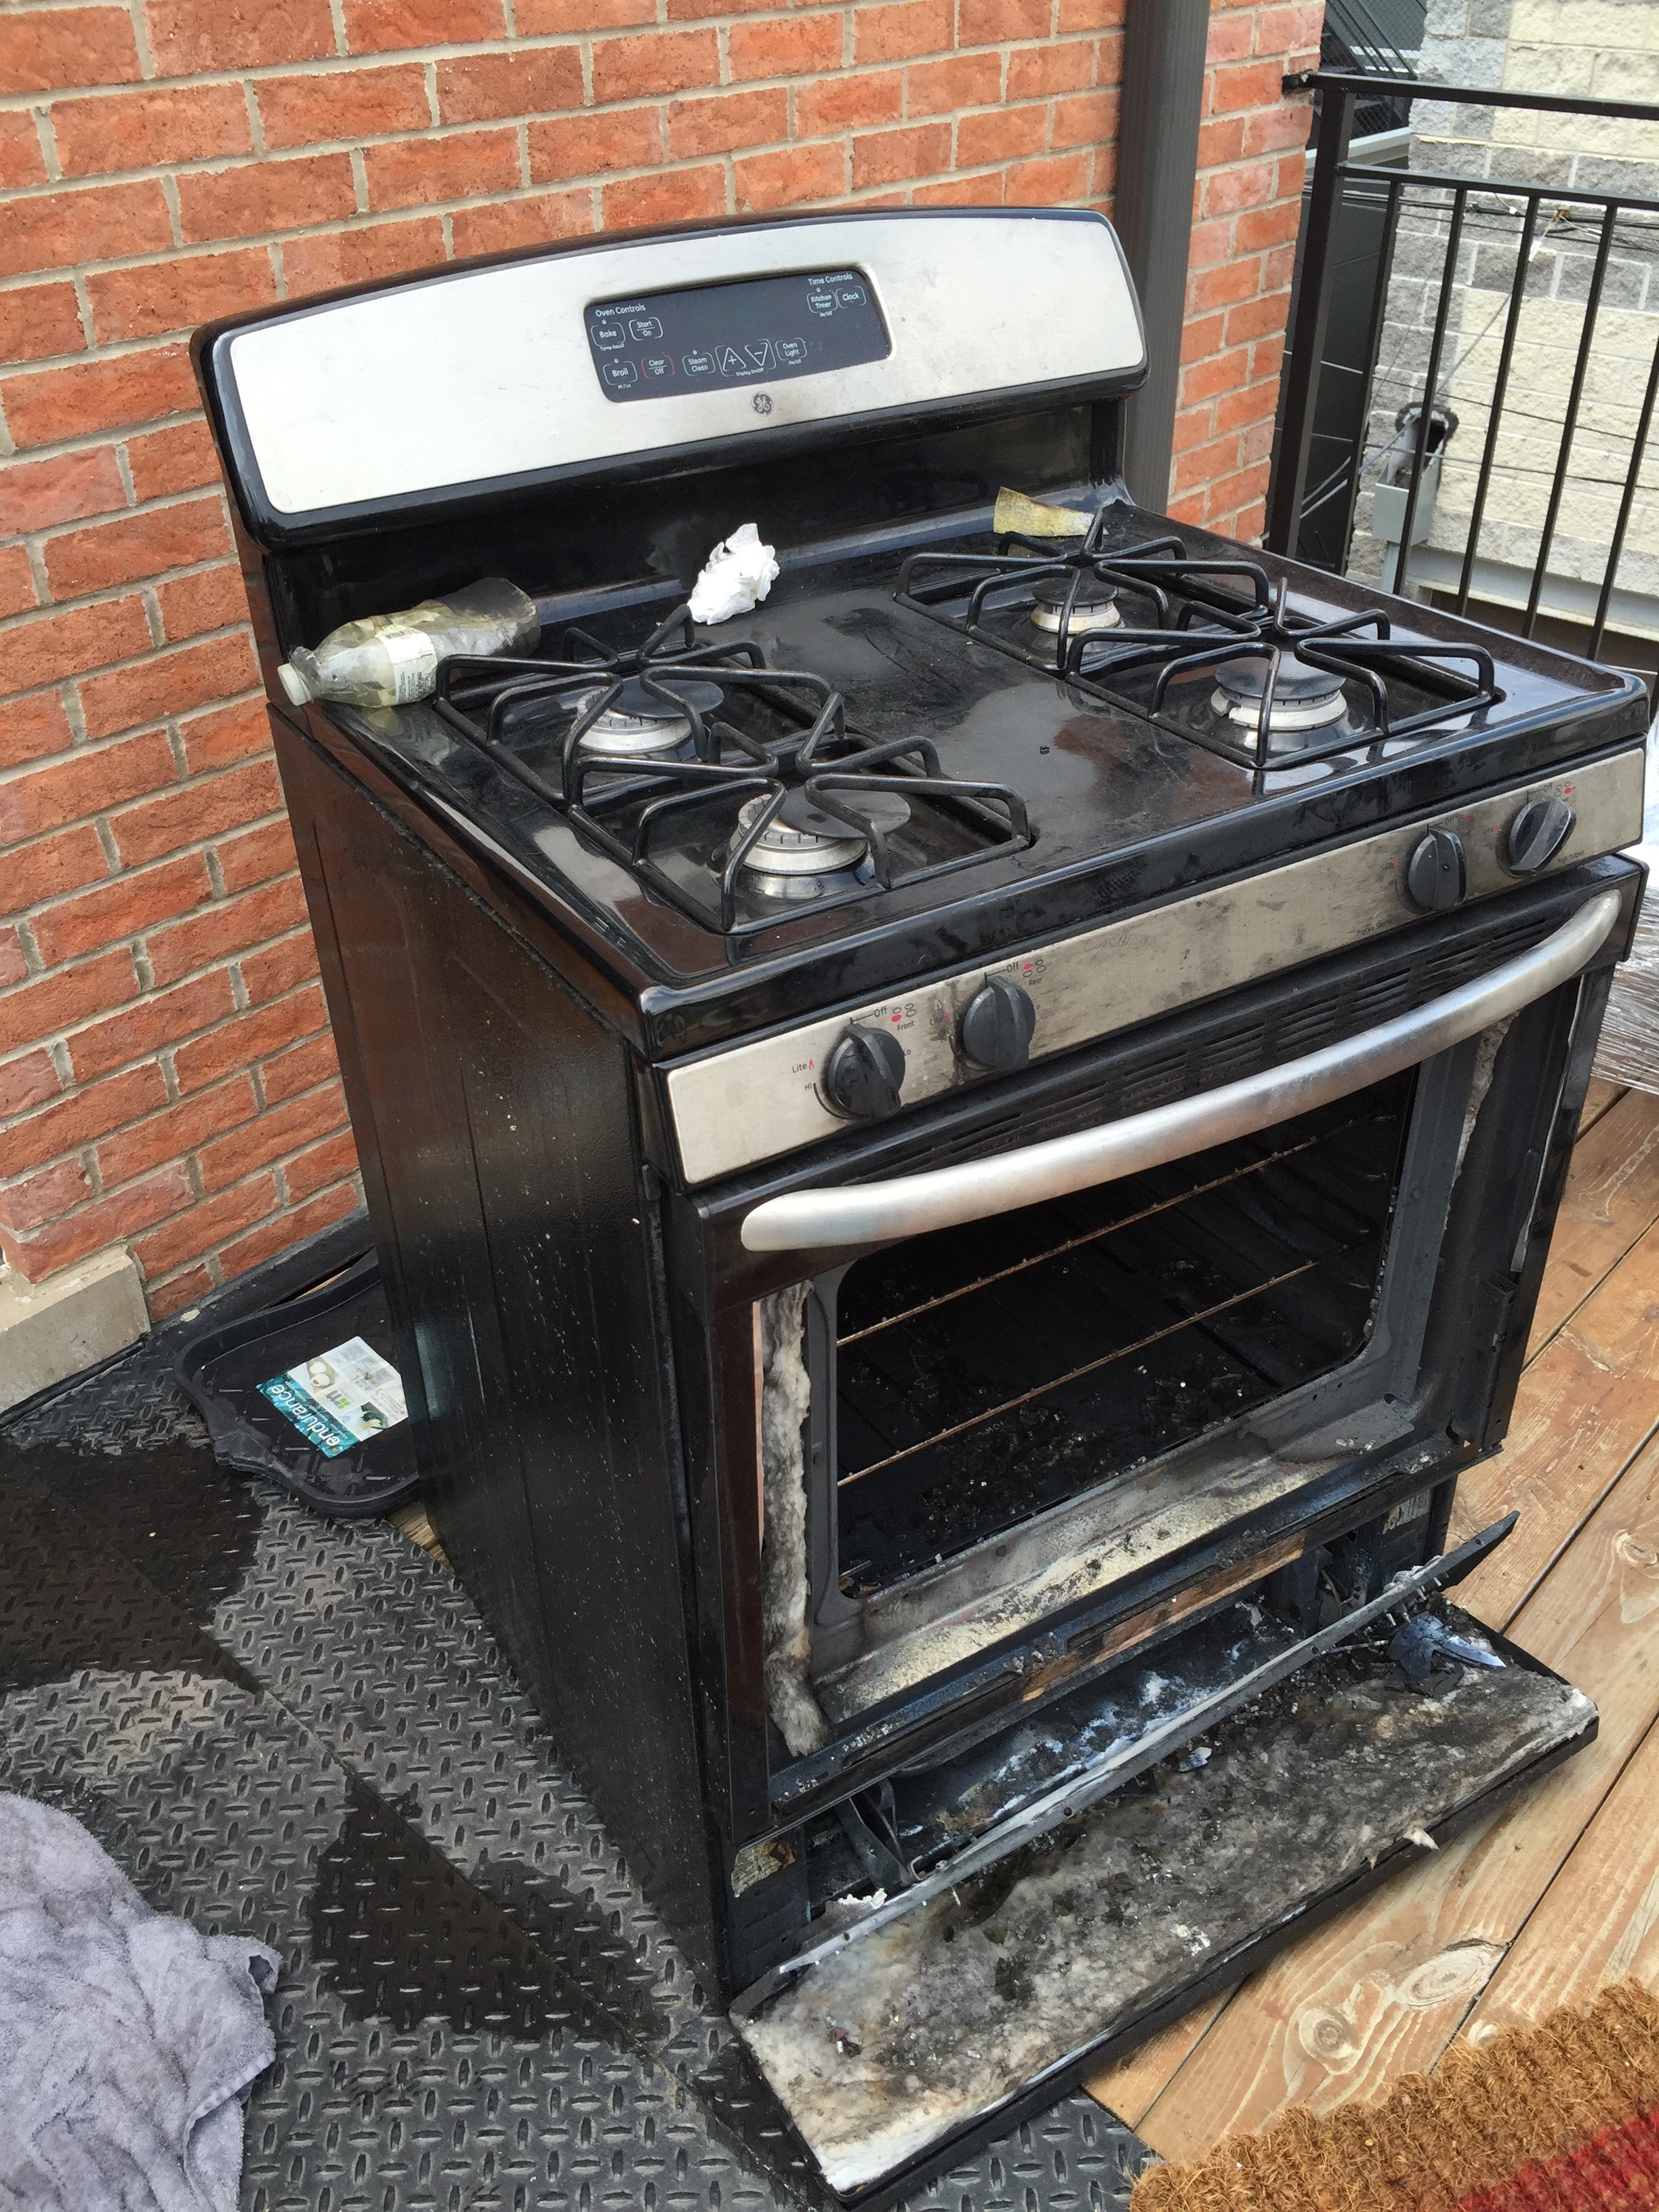 Shitty GE Stove - Exploded